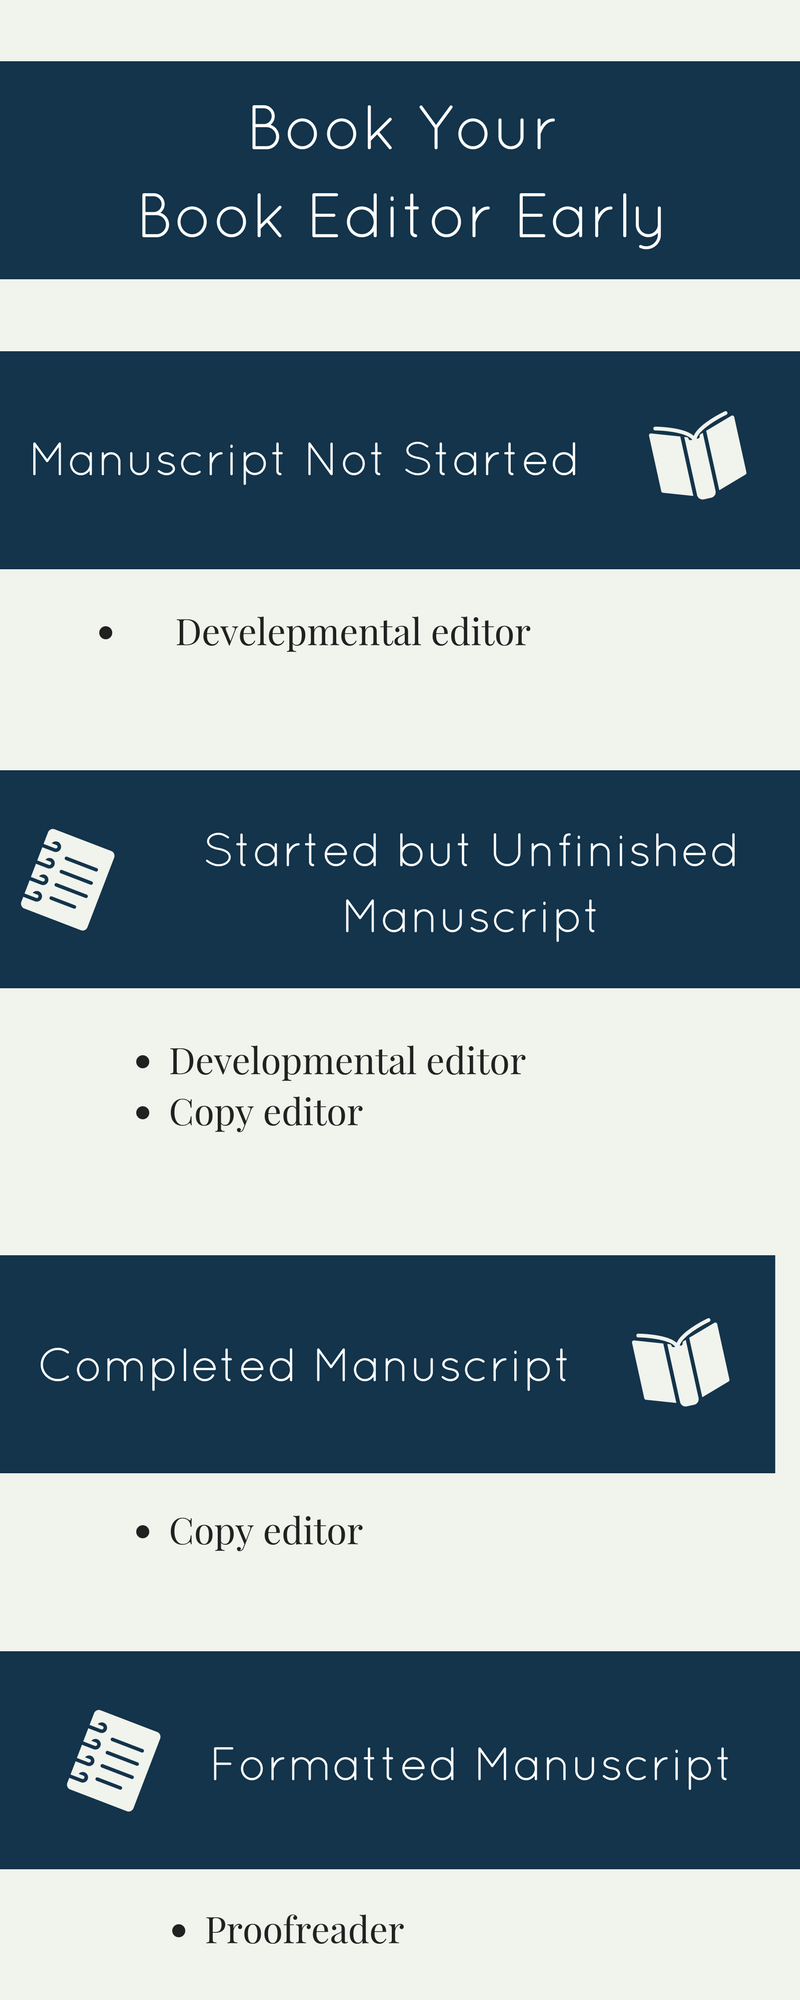 Book Your Editor Early Infographic  |  Jodi Brandon Editorial